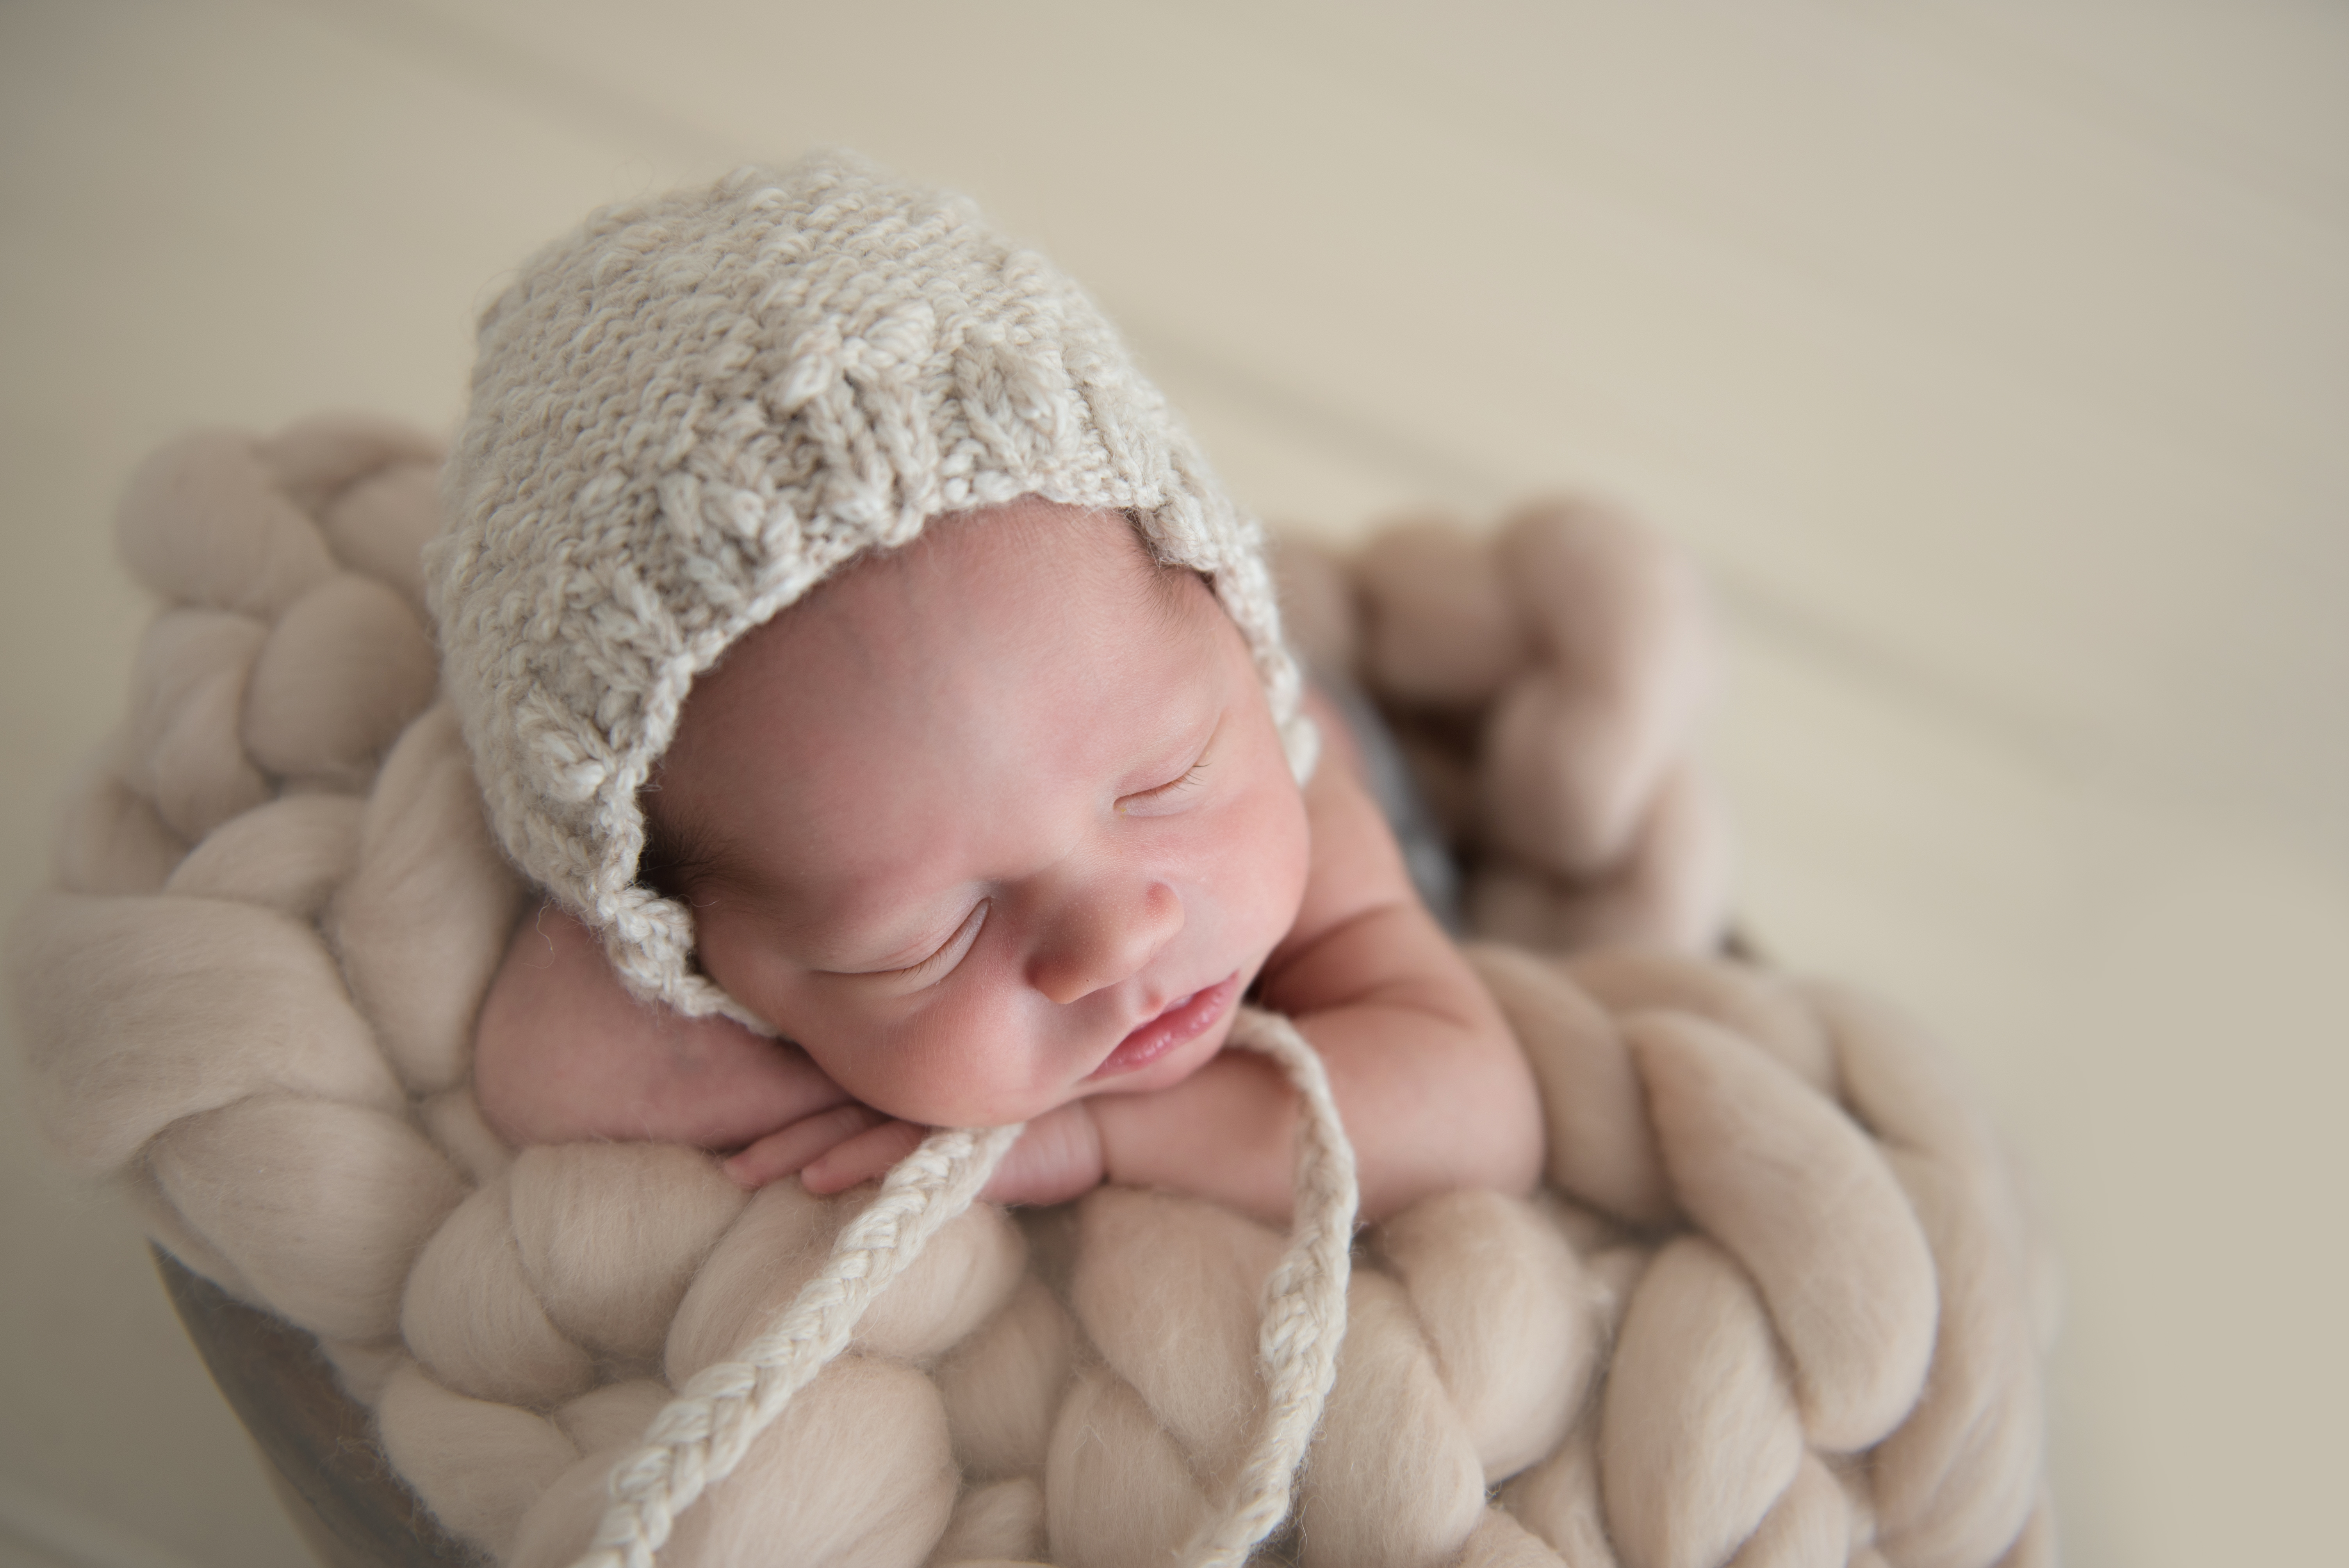 baby on belly wearing cotton bonnet